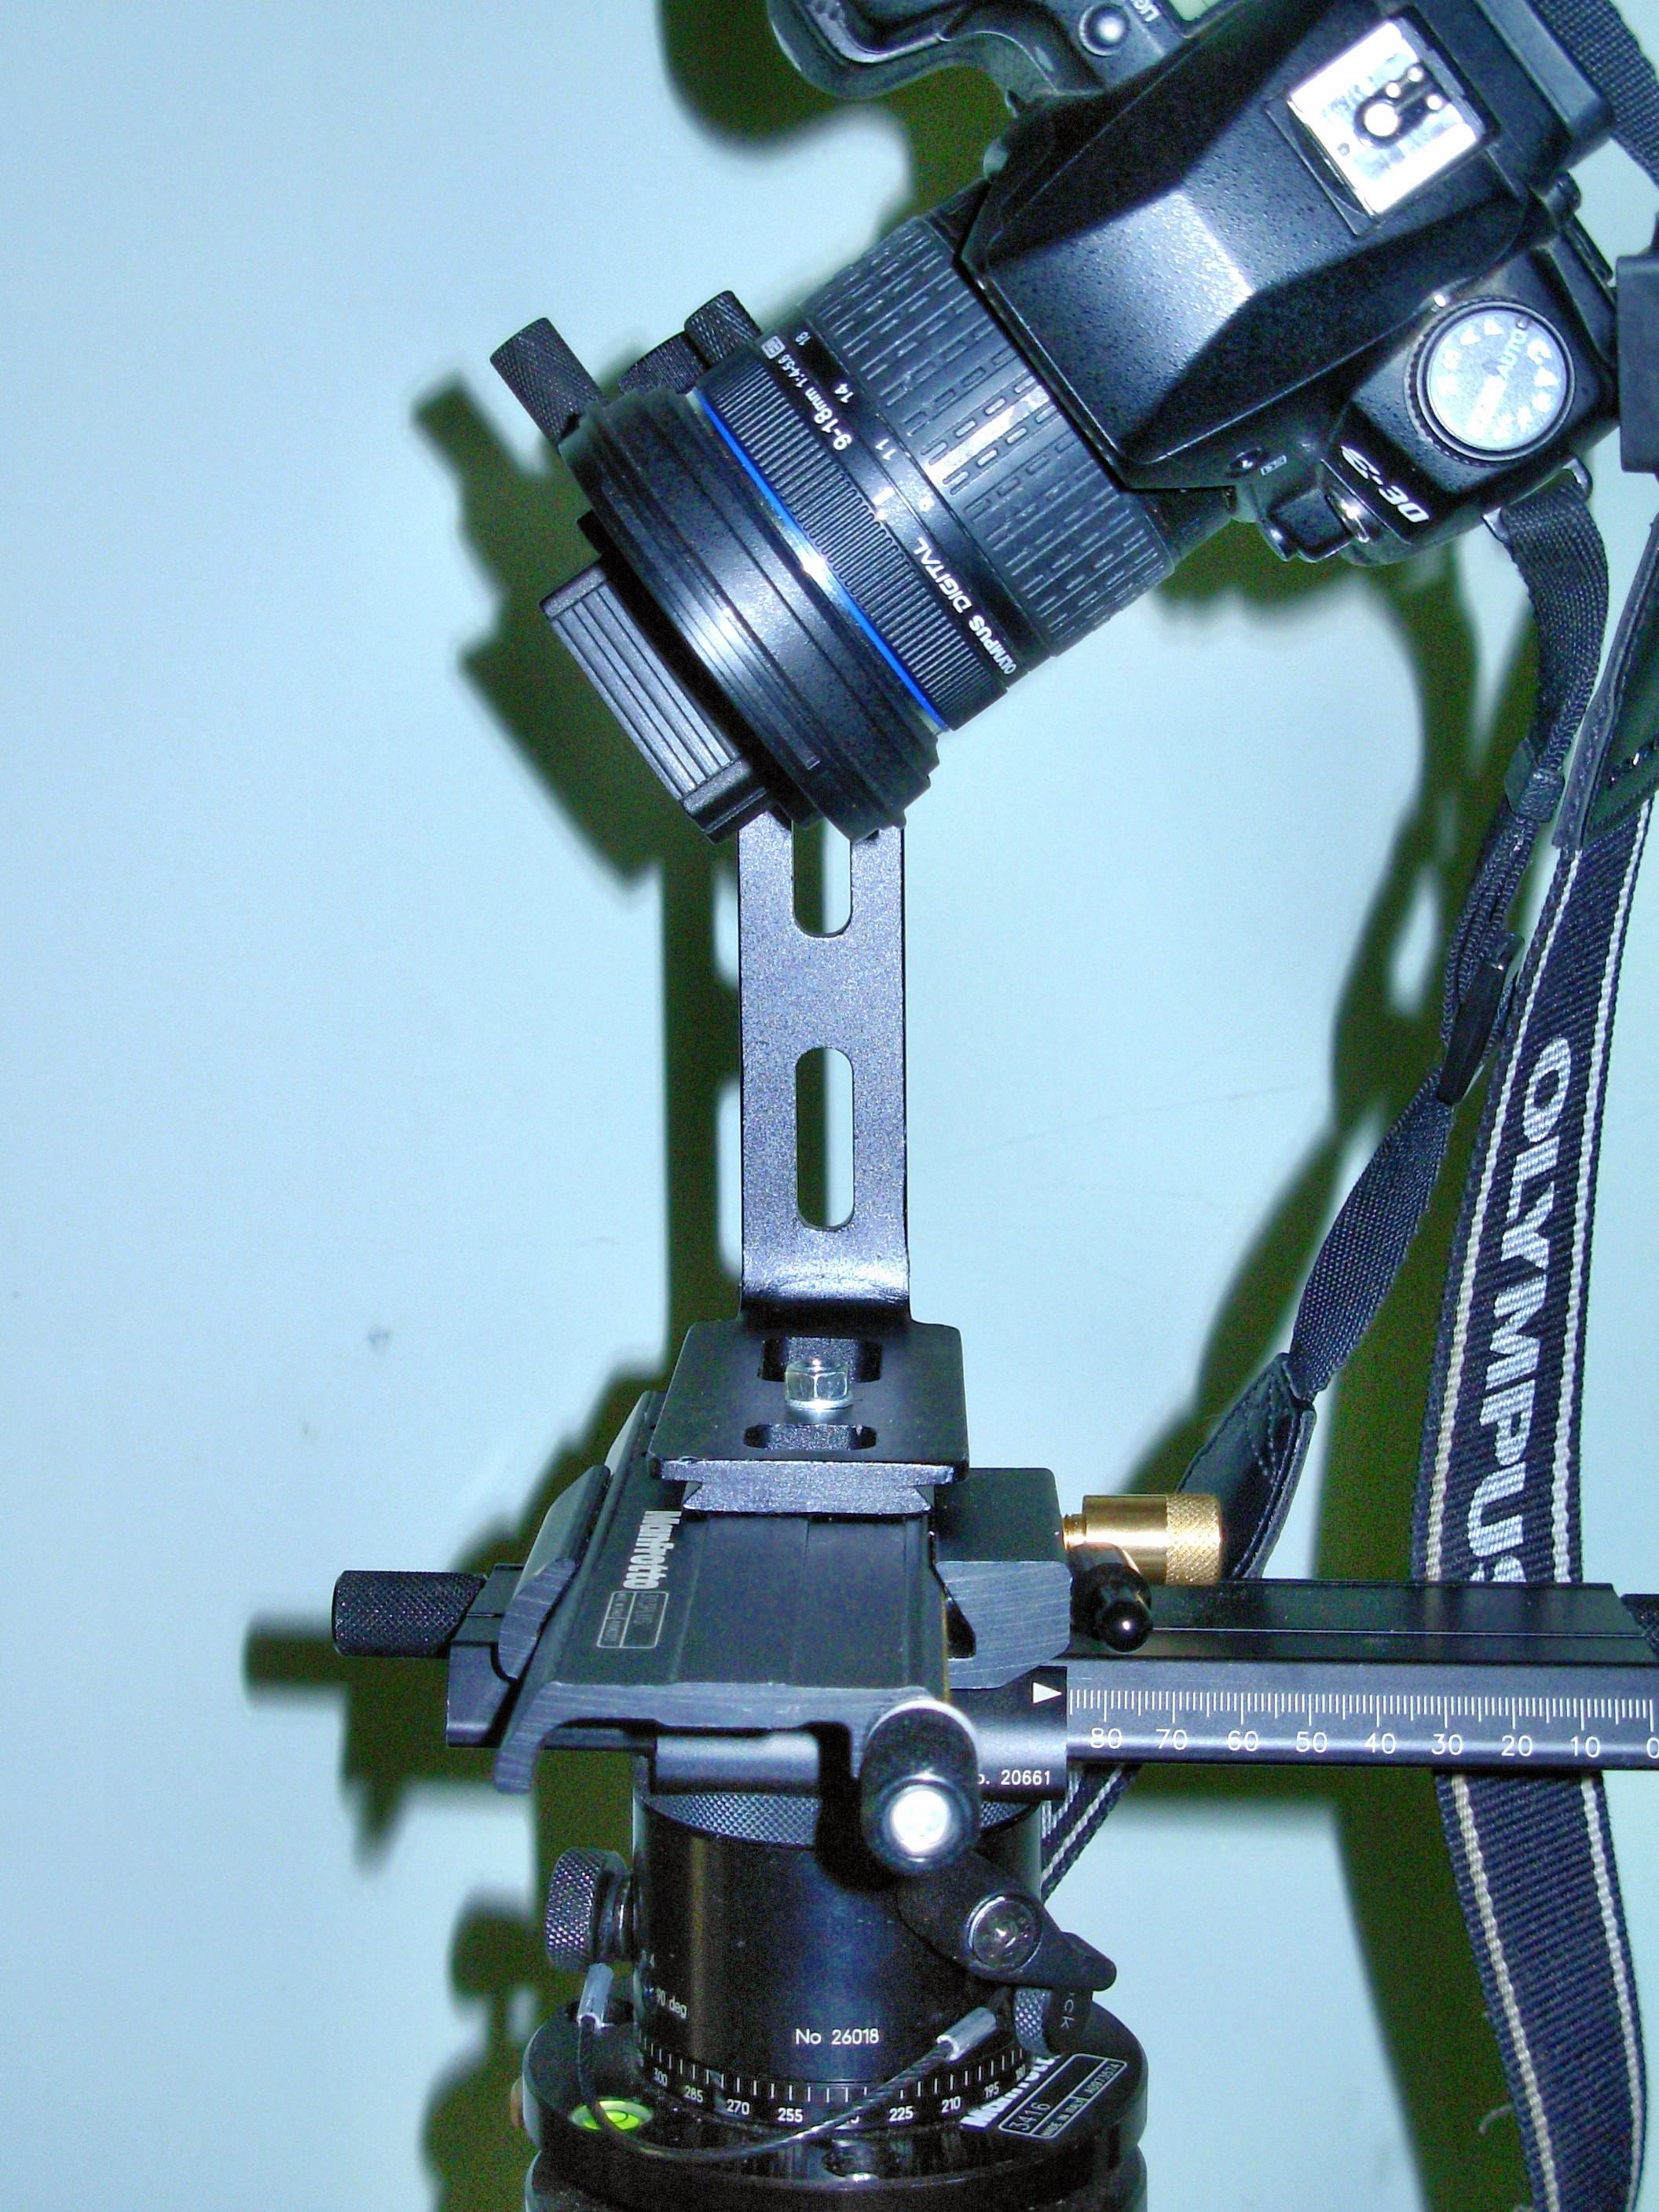 Manfrotto-bracket-2.jpeg